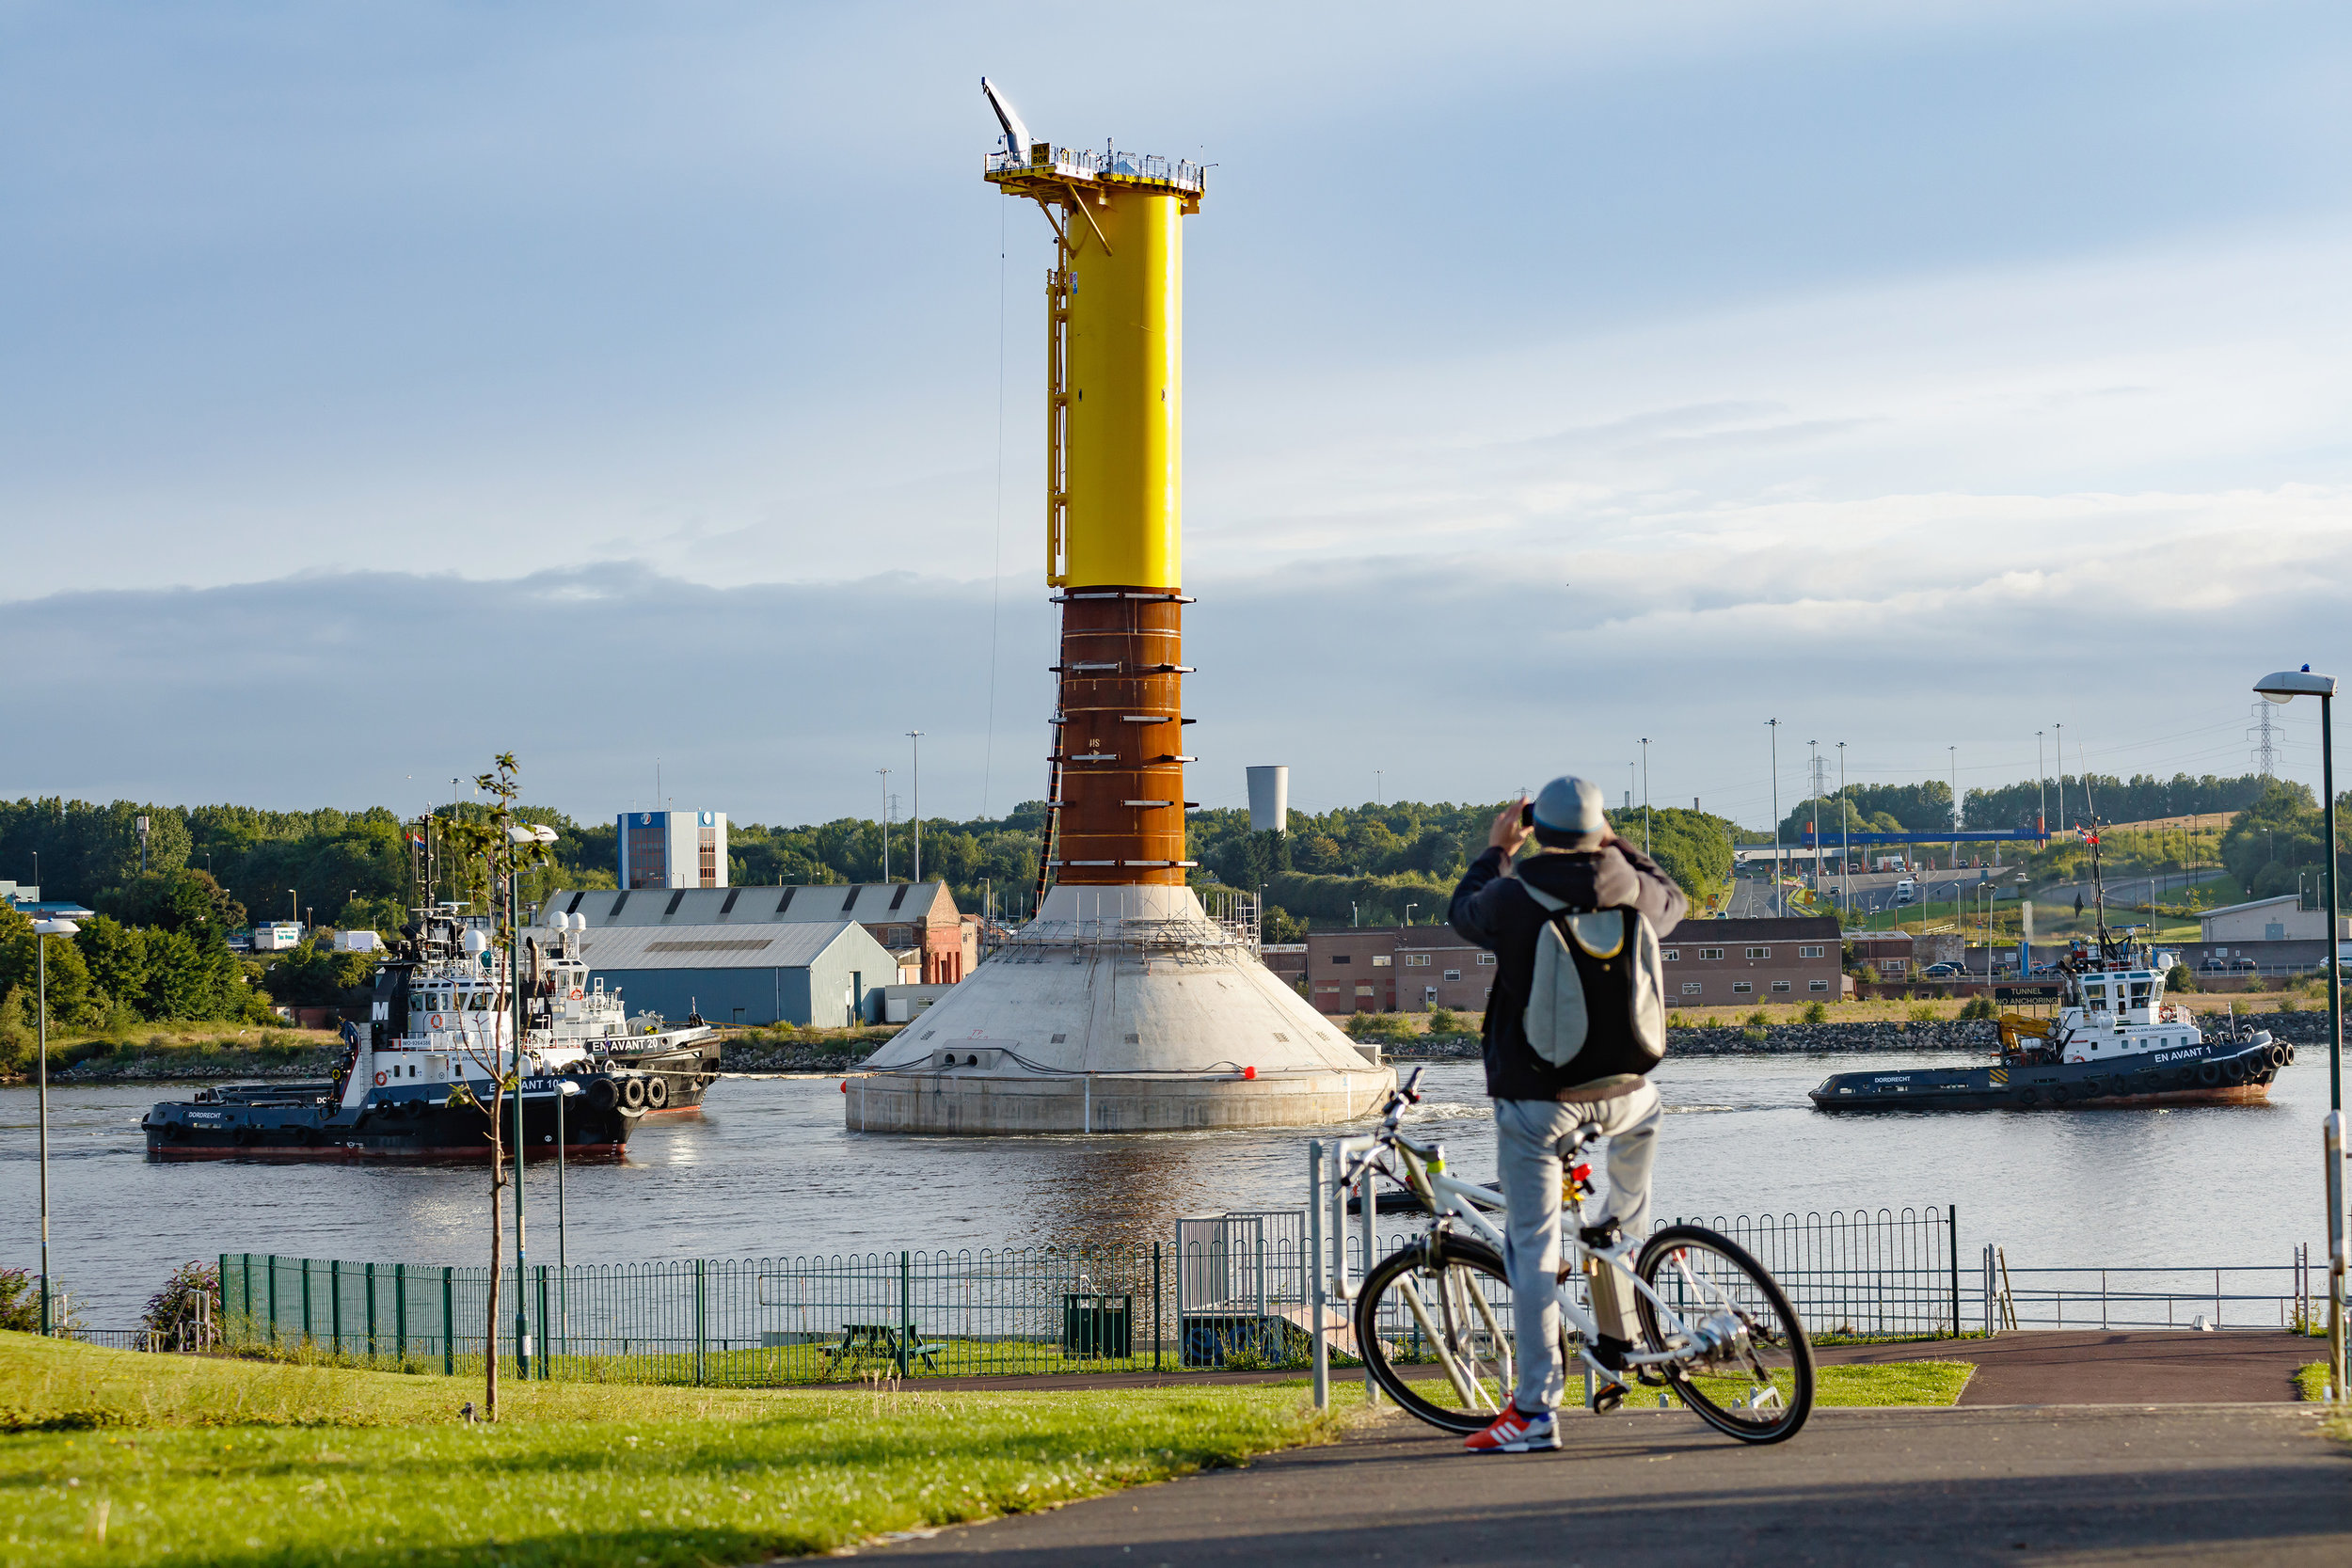 Wind farm gravity base floating down the river Tyne, watched by an onlooker on an electric bycycle.